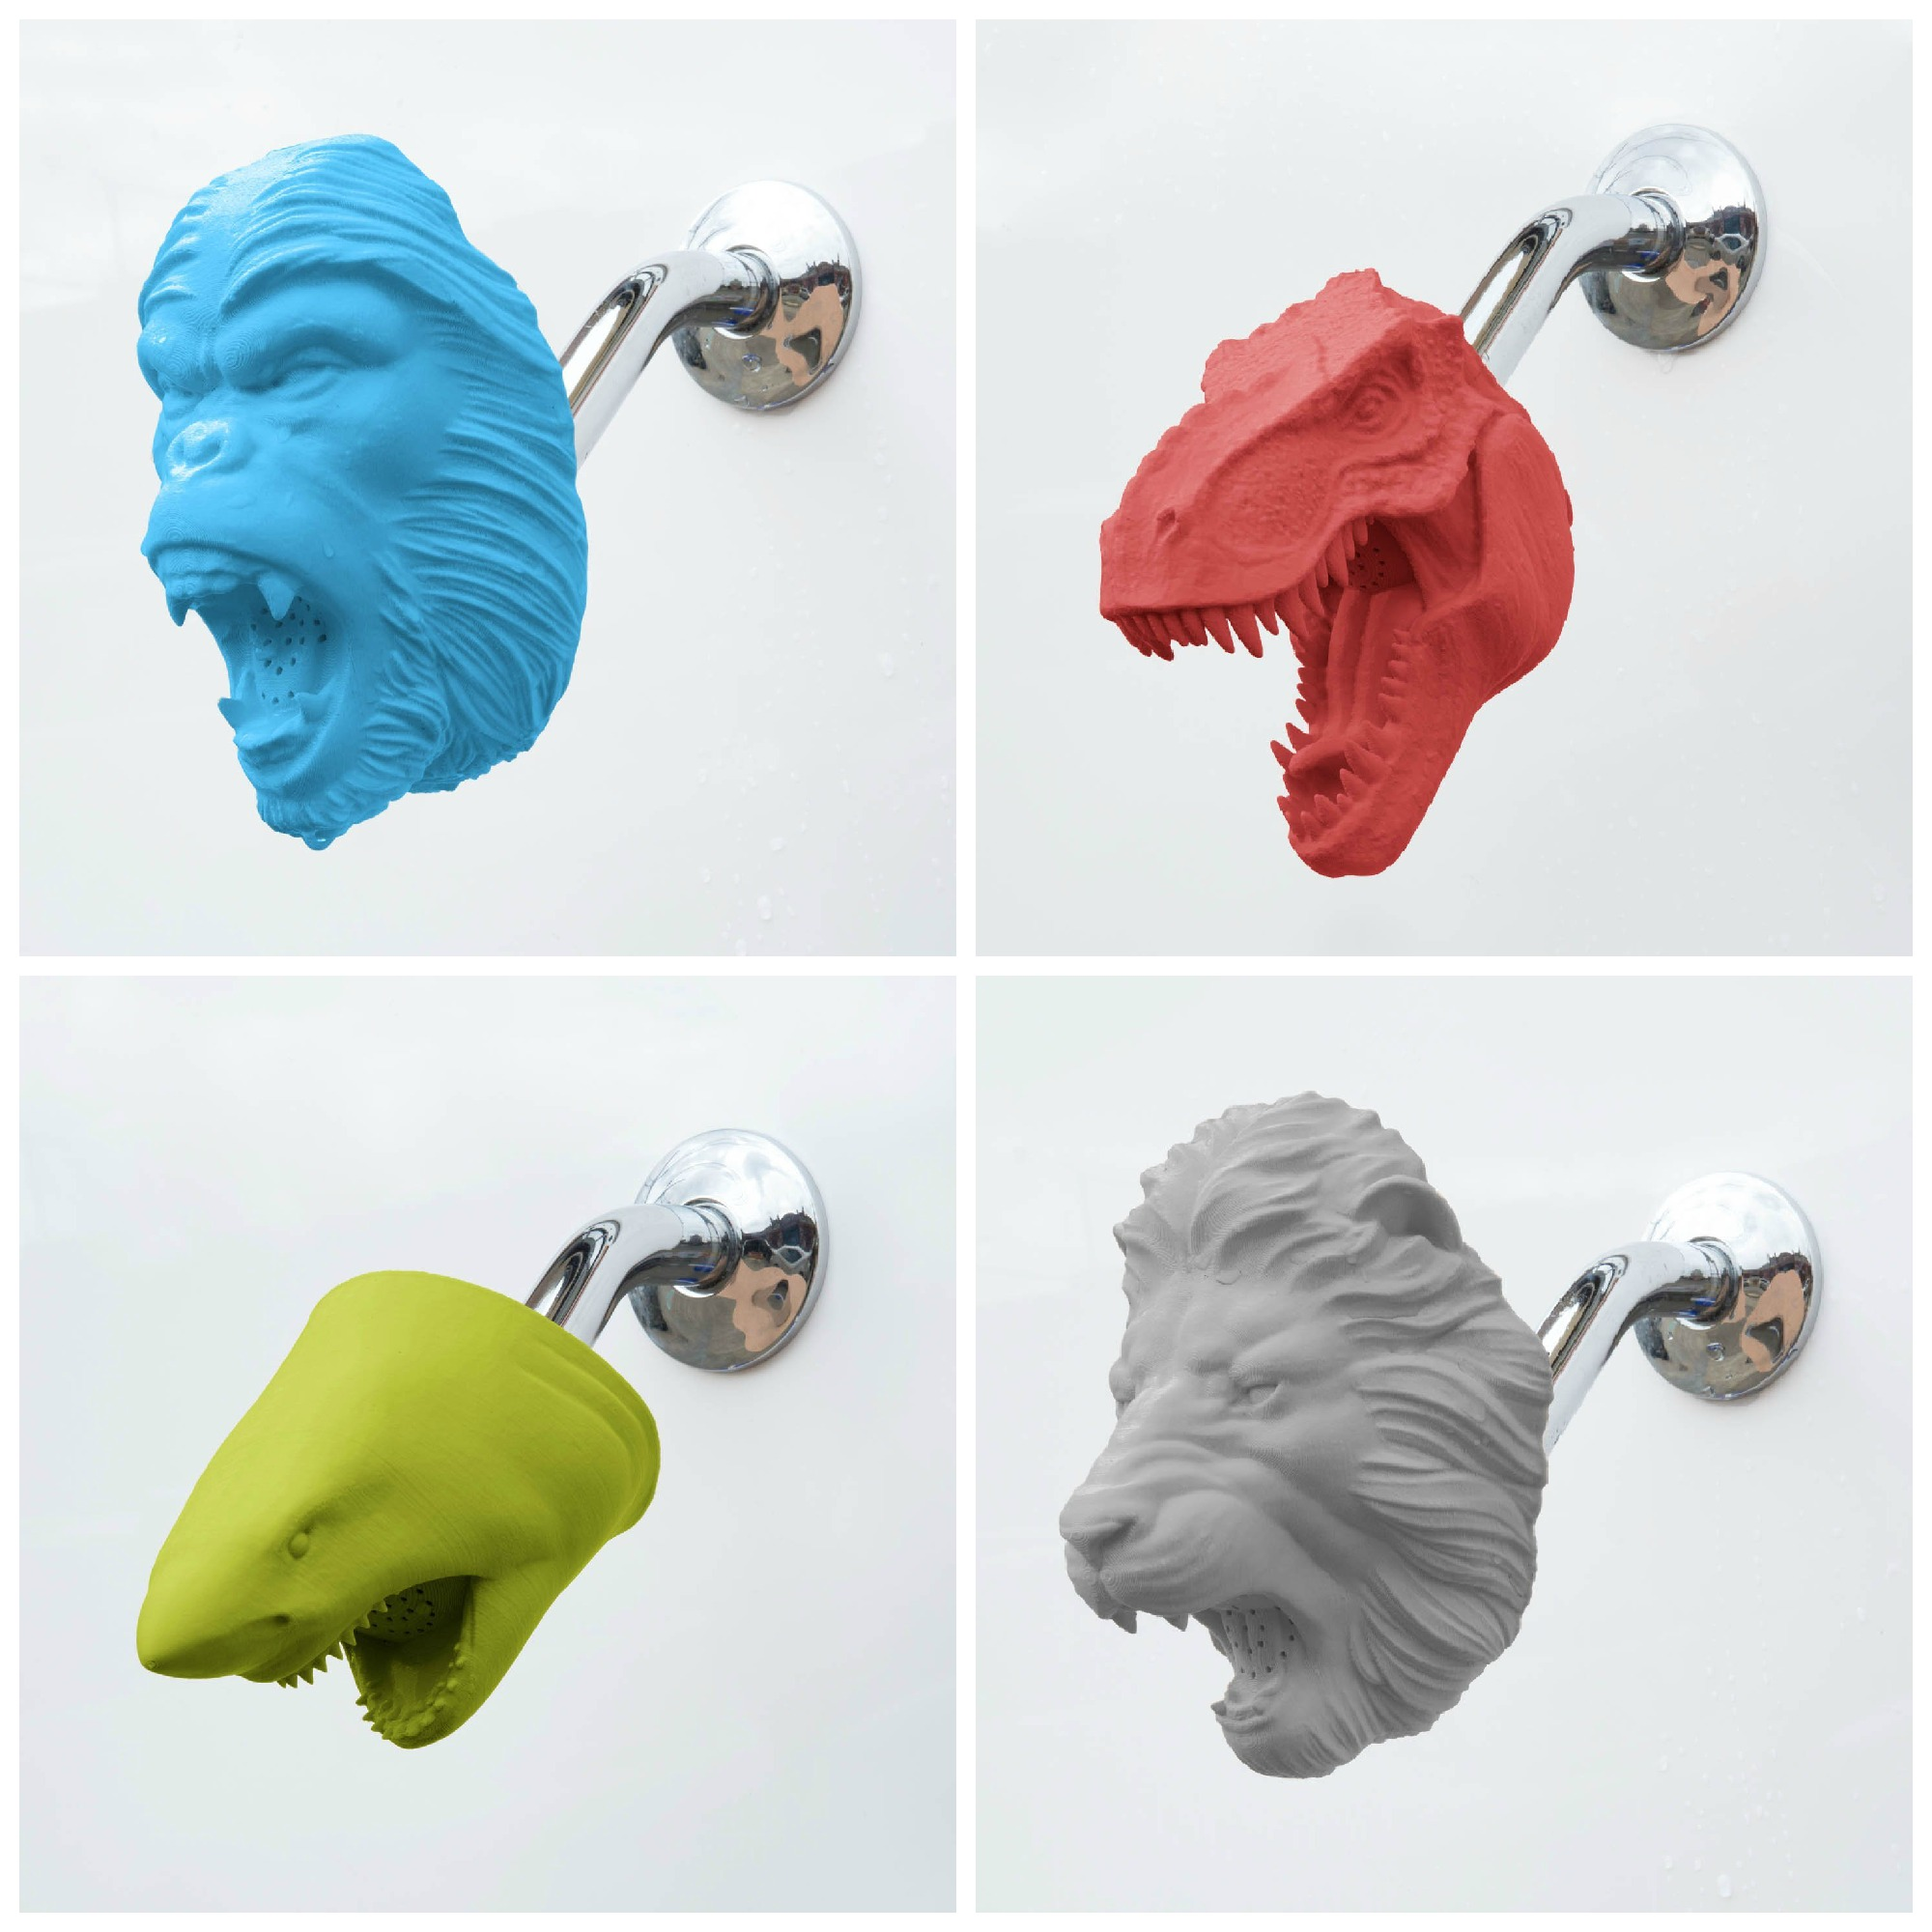 Get wild with Zooheads shower heads! They may actually get your kids excited to take a shower for a change.